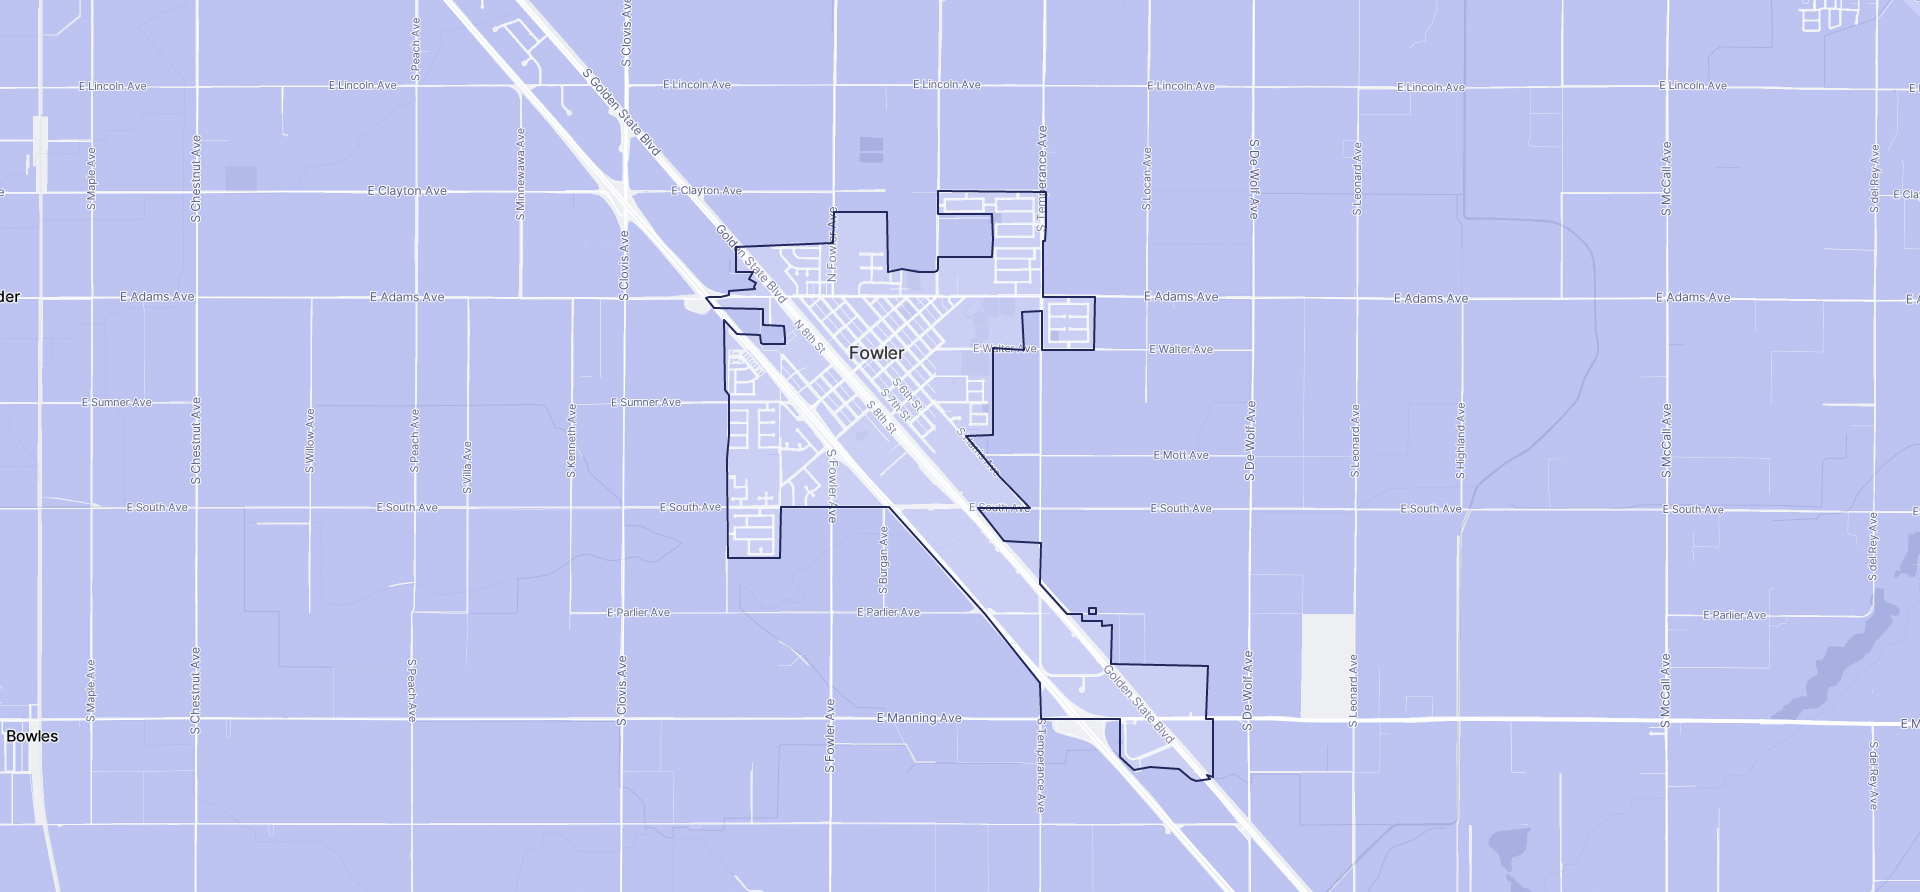 Image of Fowler boundaries on a map.